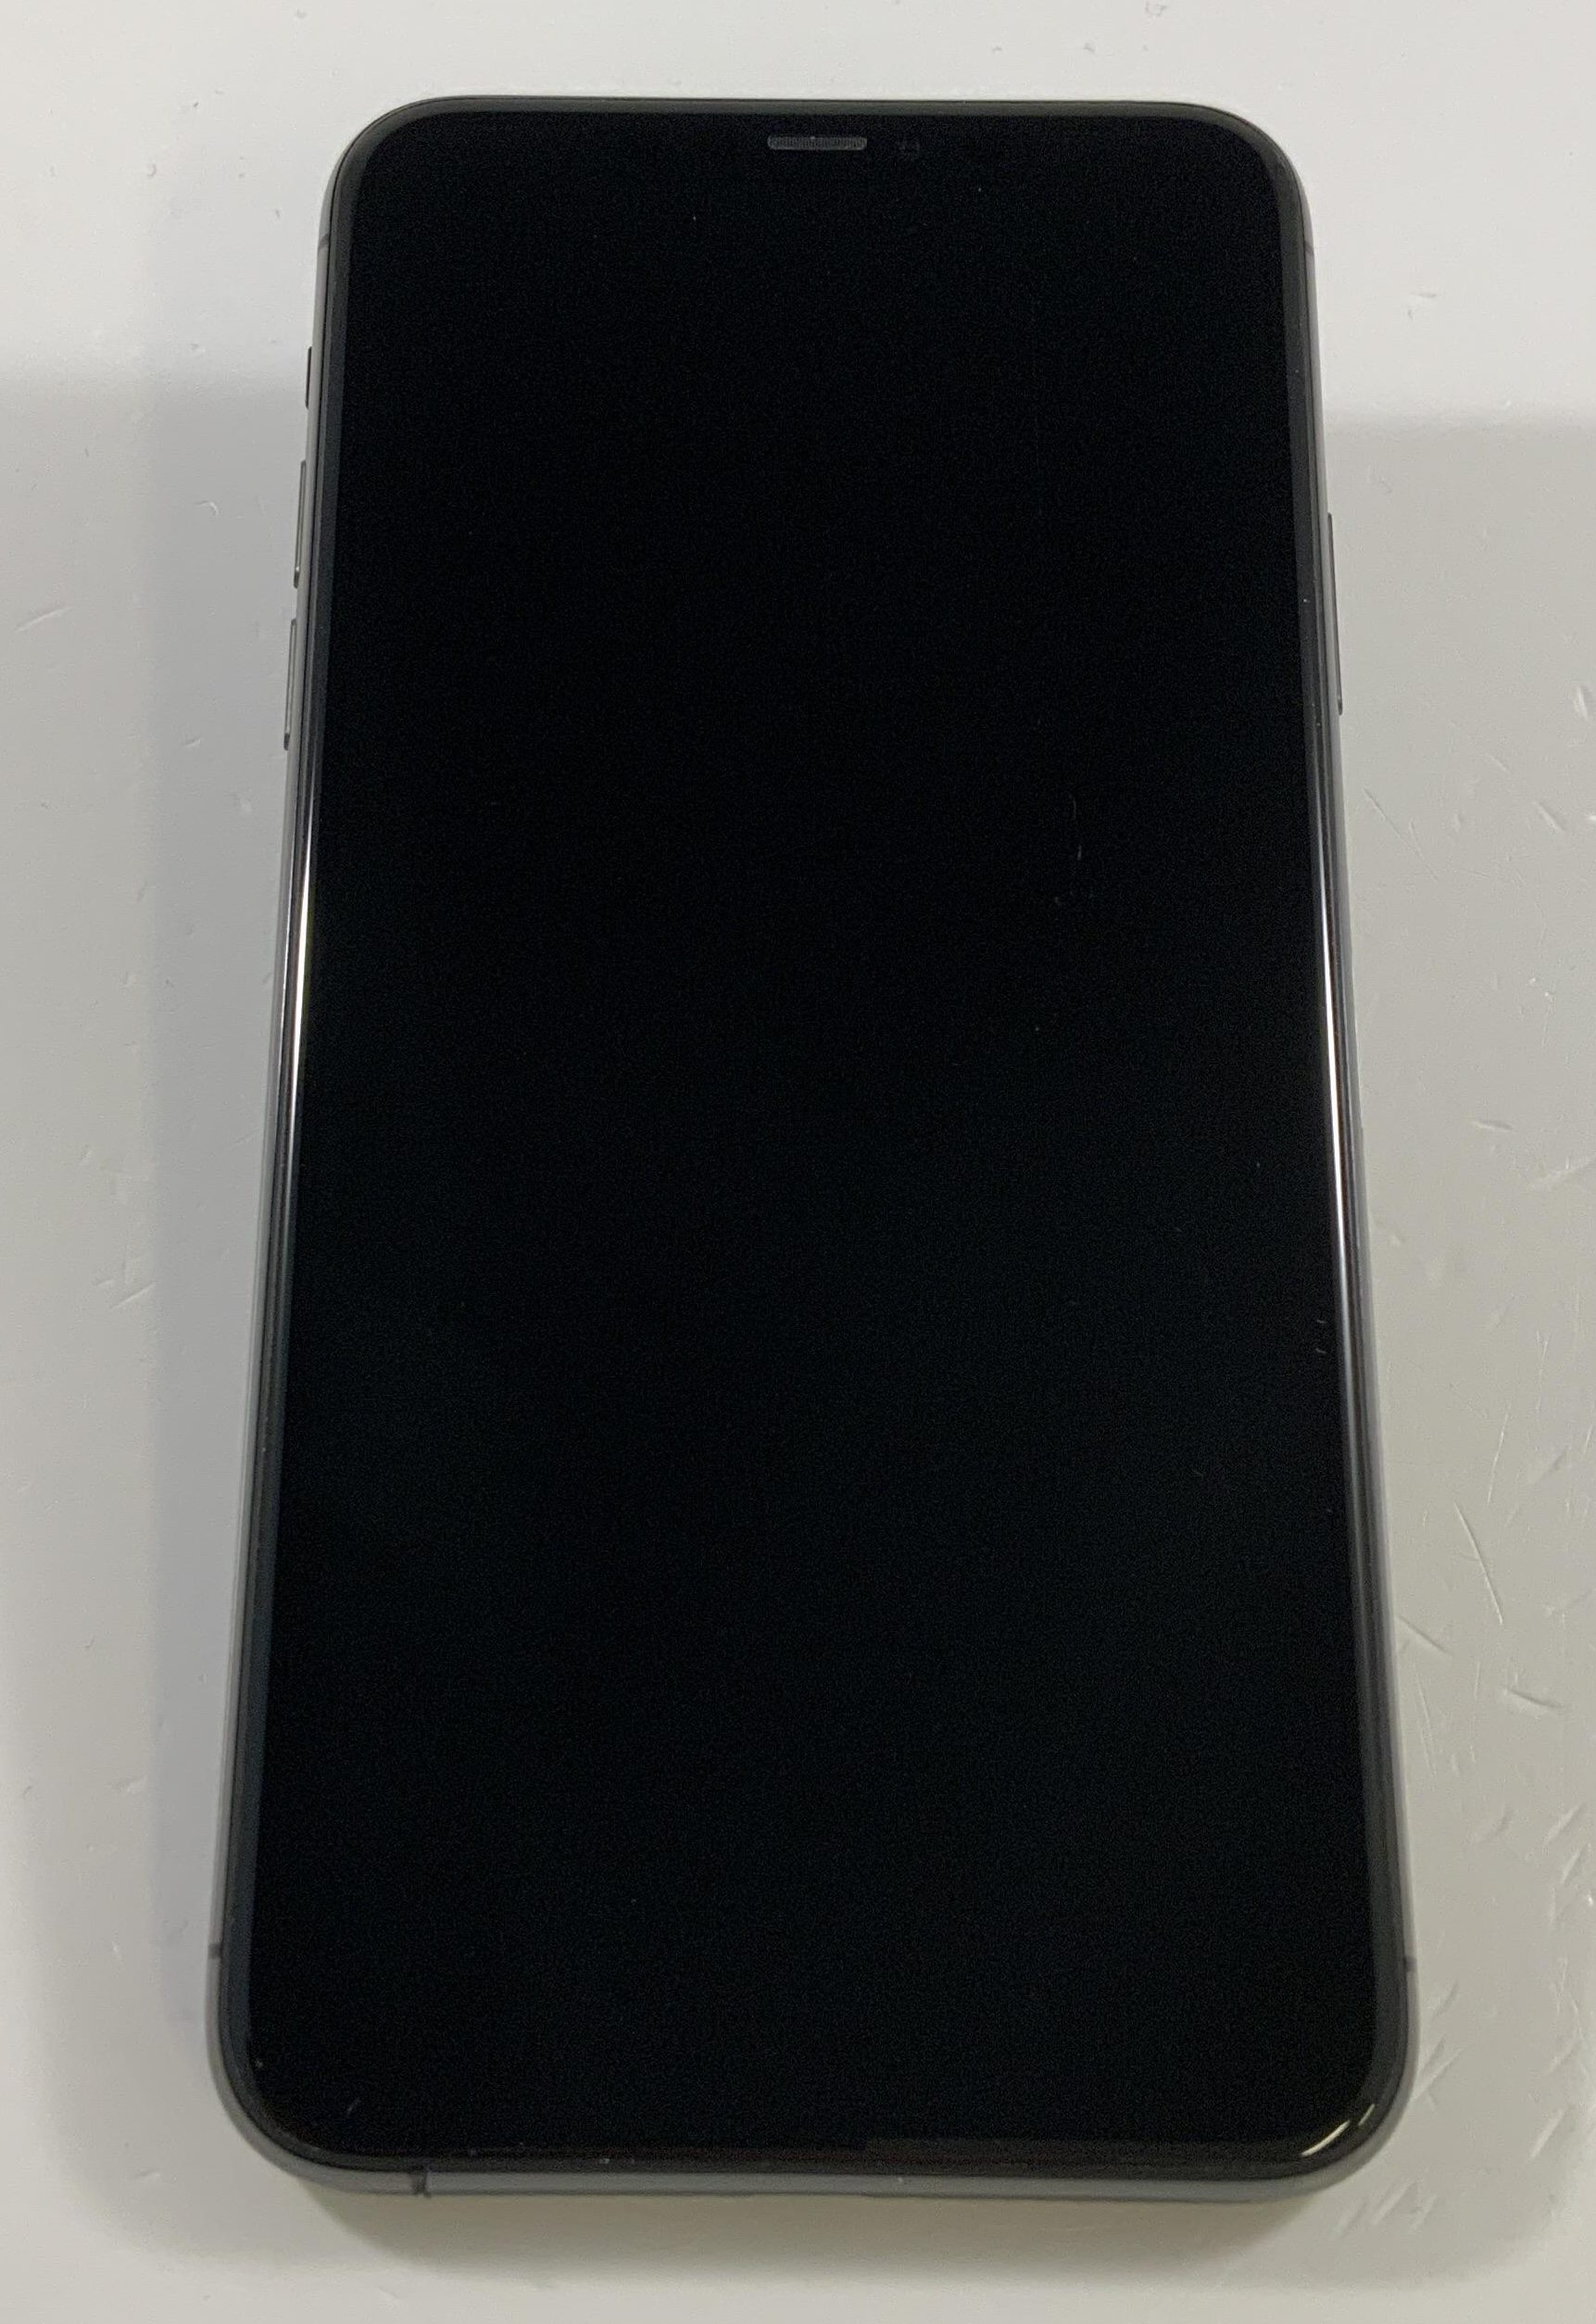 iPhone 11 Pro Max 256GB, 256GB, Space Gray, Bild 1